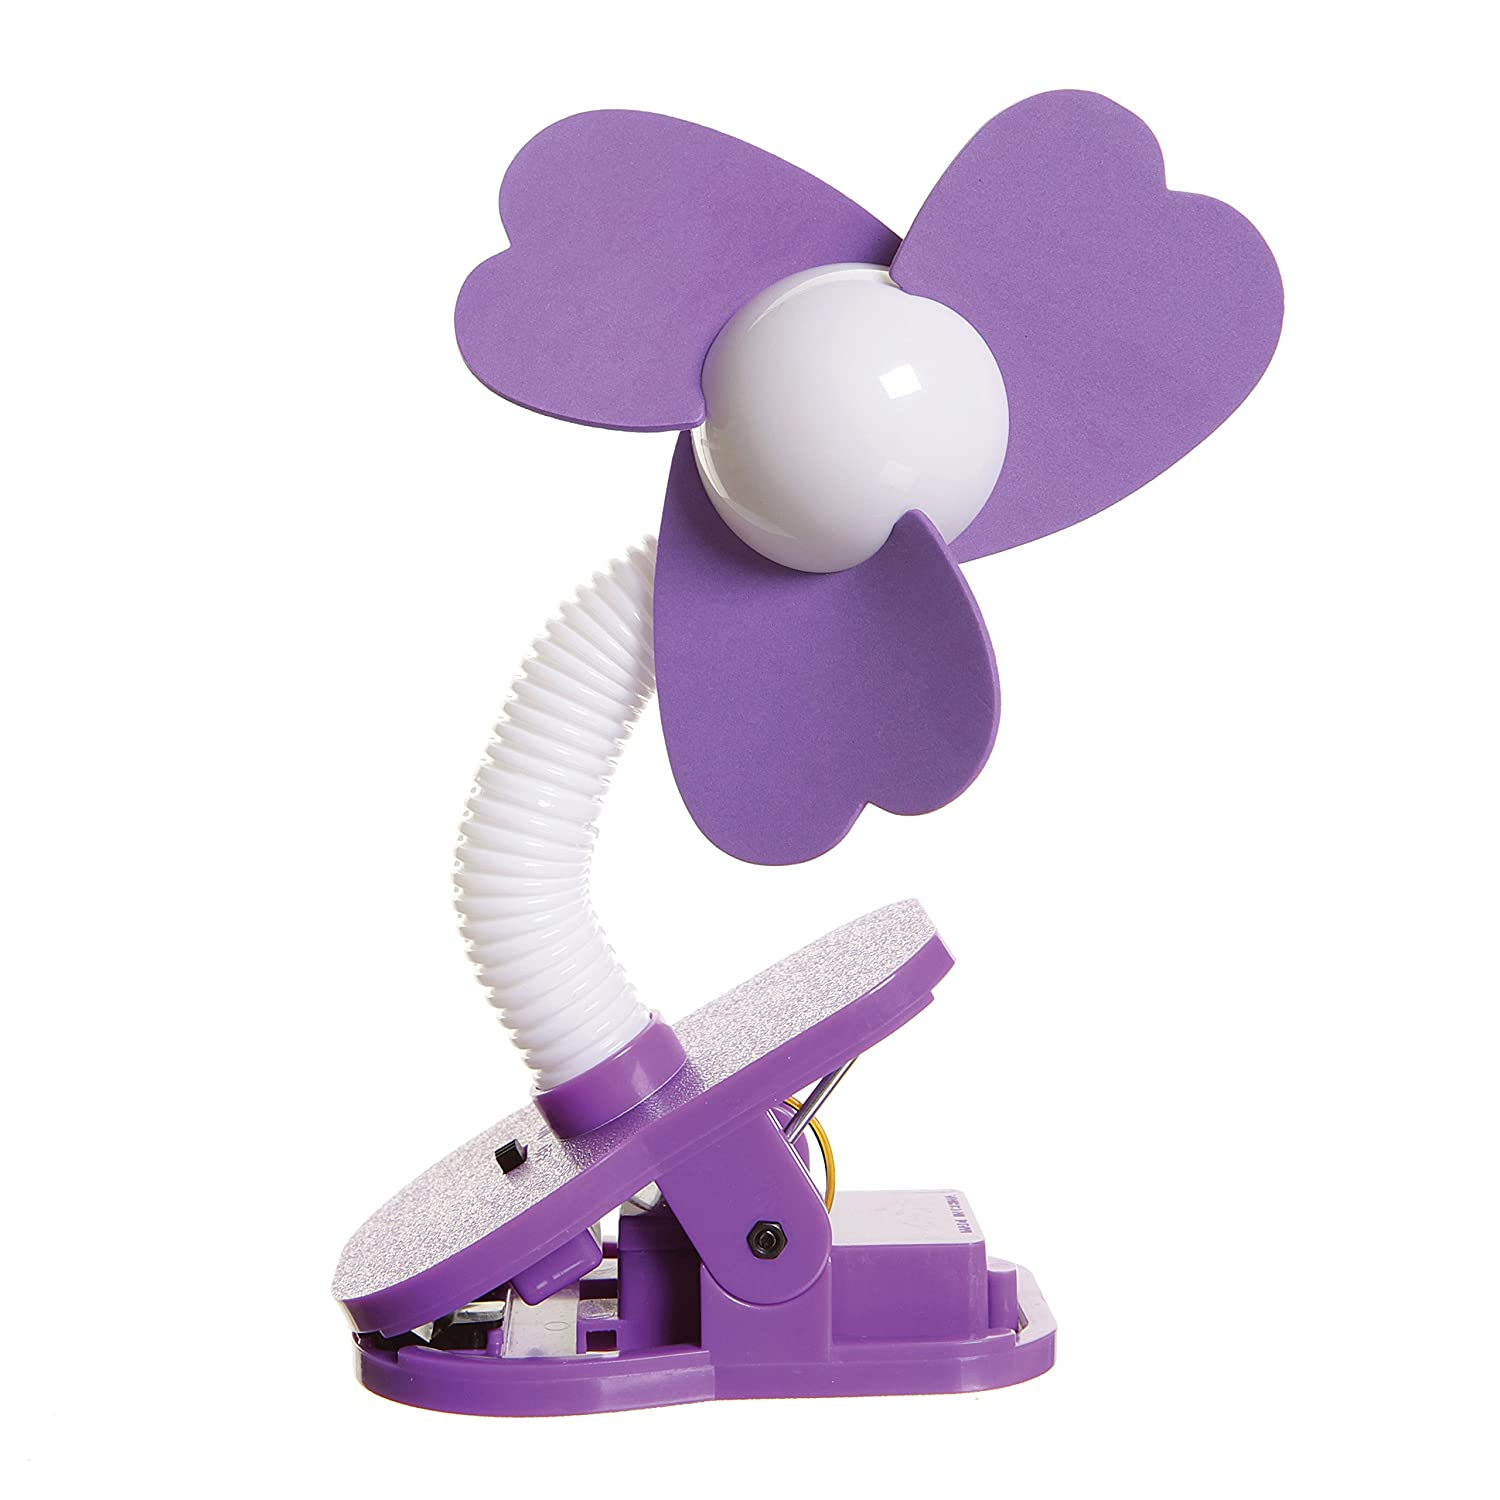 Dreambaby Stroller Fan - Purple/White T04